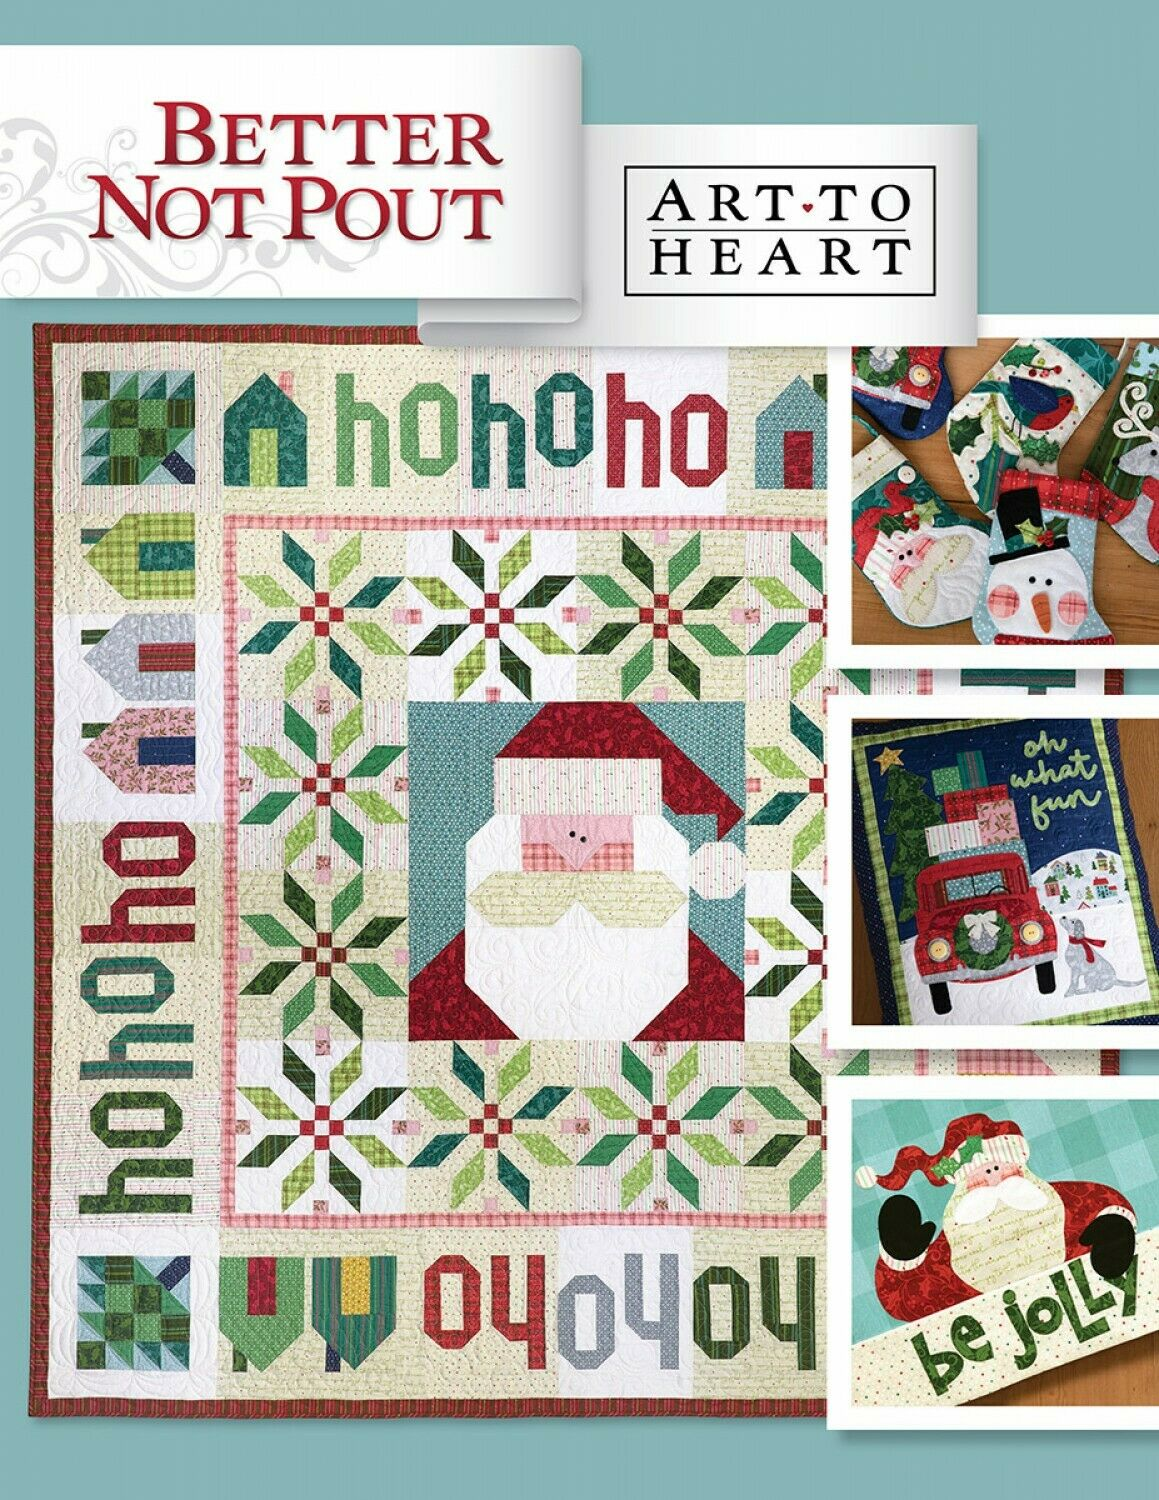 Better Not Pout Sewing Project Book by Art To Heart